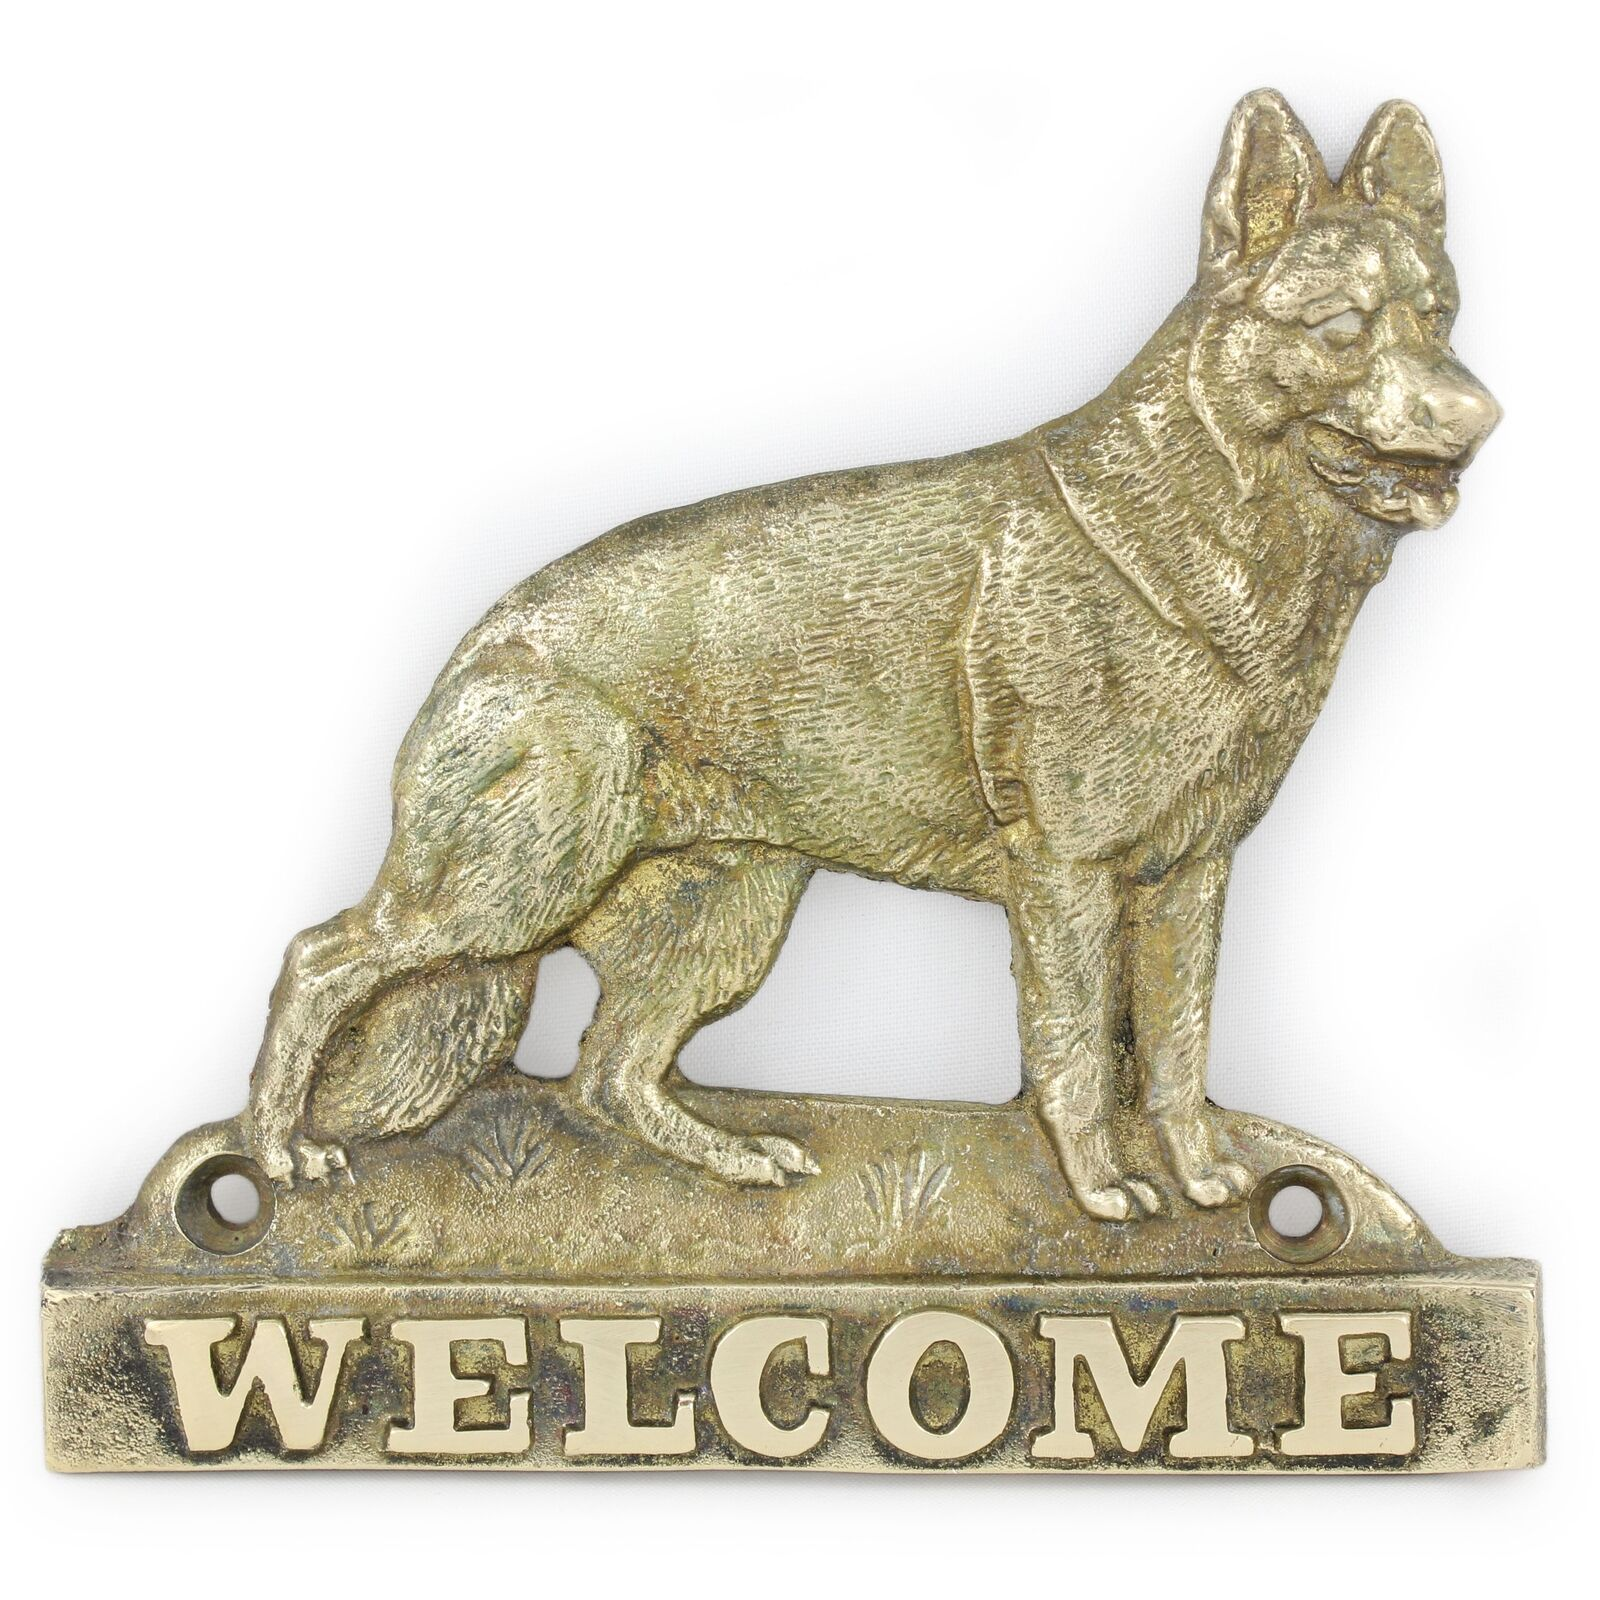 German Shepherd - brass tablet with image of a dog, Art Dog